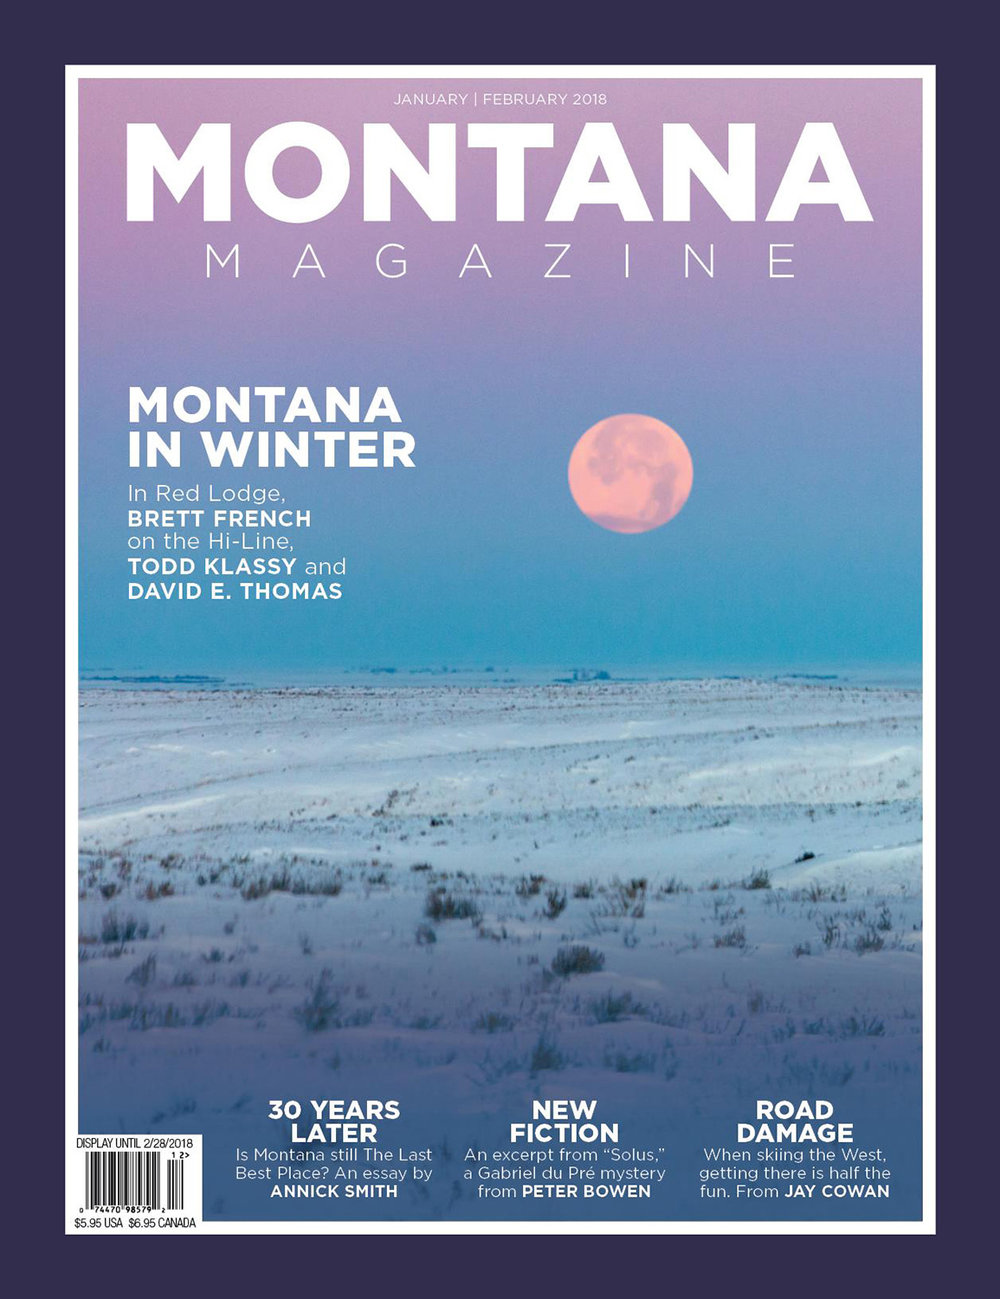 Photos of Winter in Montana on Cover of Montana Magazine